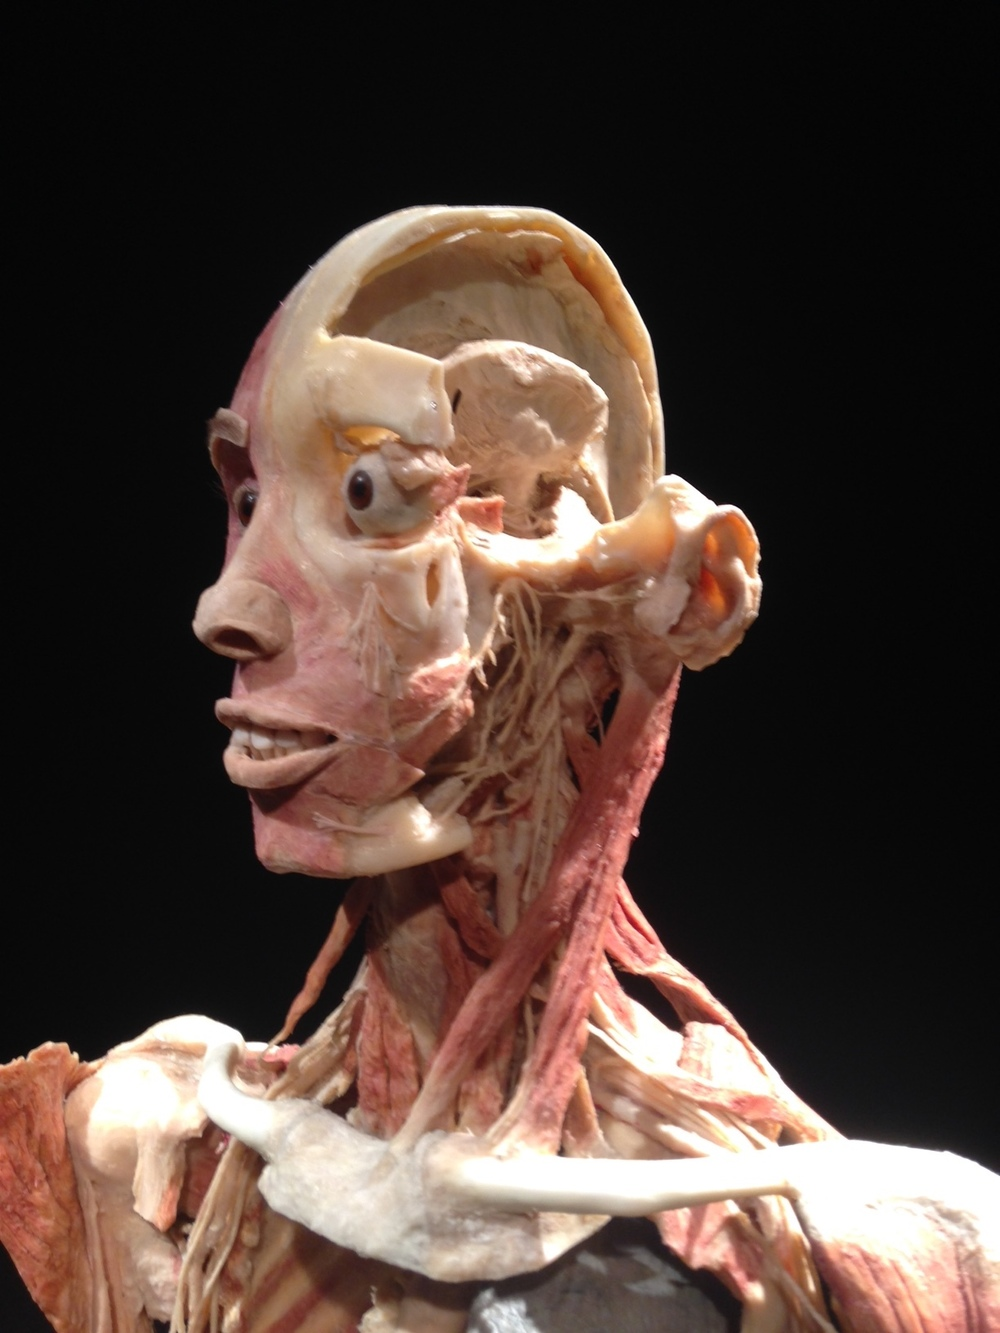 This human head has an eerie stare. It looks like something Salvador Dali might have done.